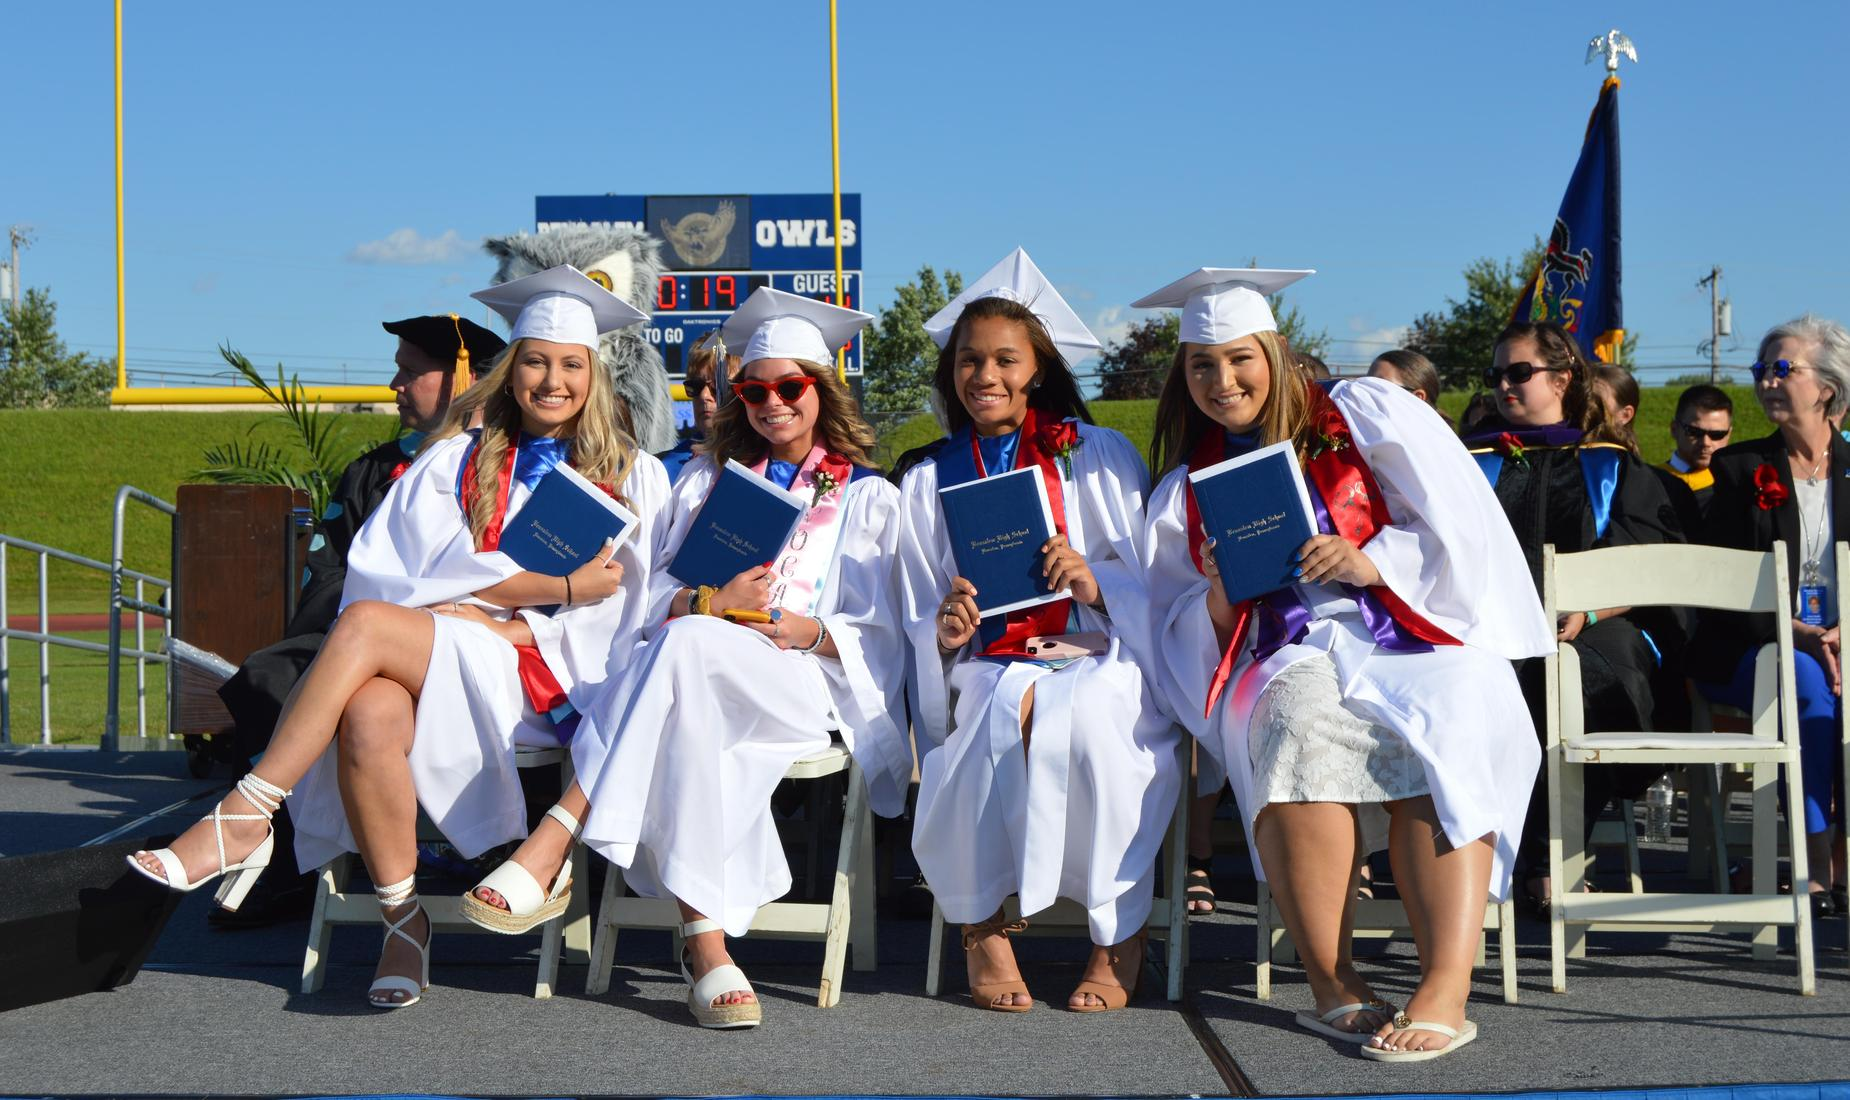 Student Government Officers dresses in white graduation gowns hold up their diplomas